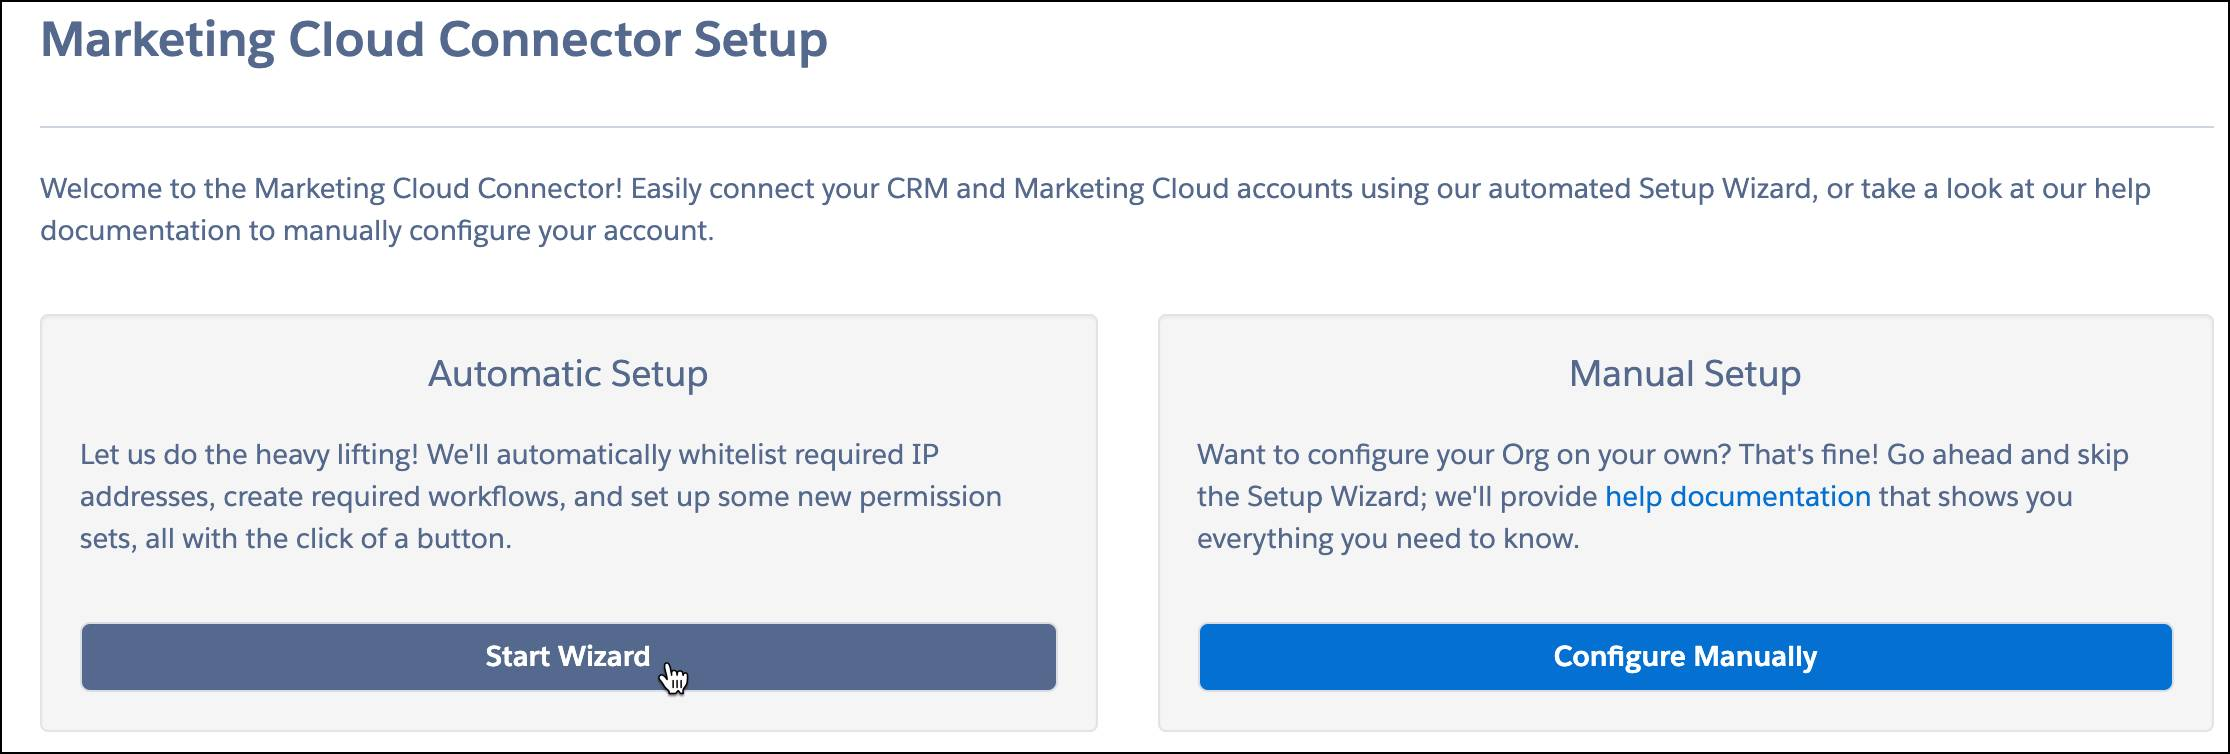 Marketing Cloud Connect Setup with Start Wizard button highlighted.